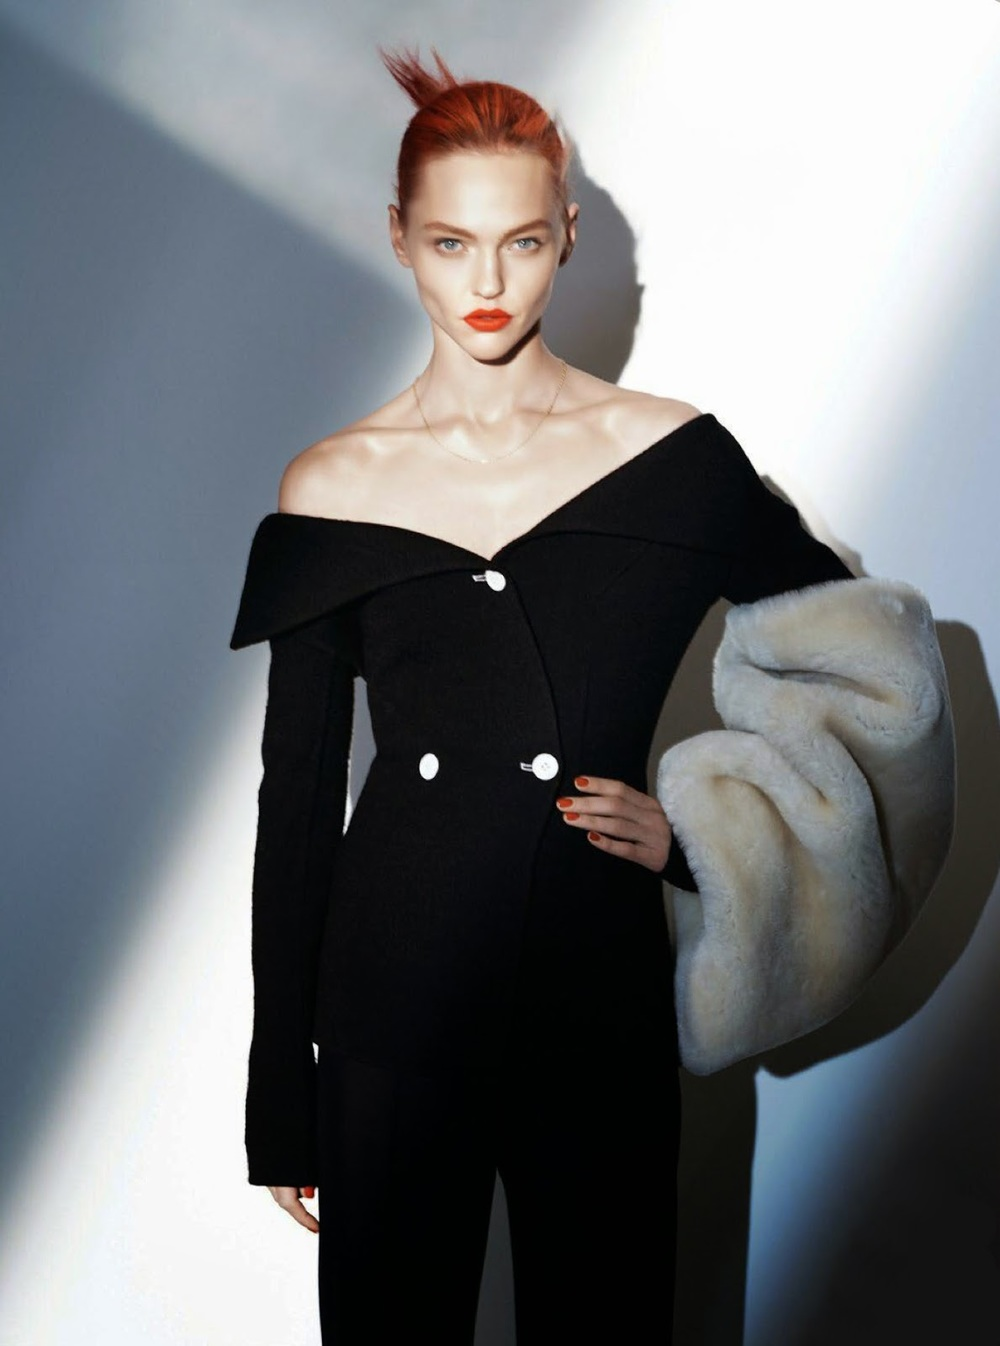 sasha-pivovarova-by-david-sims-for-vogue-paris-august-2014-6.jpg